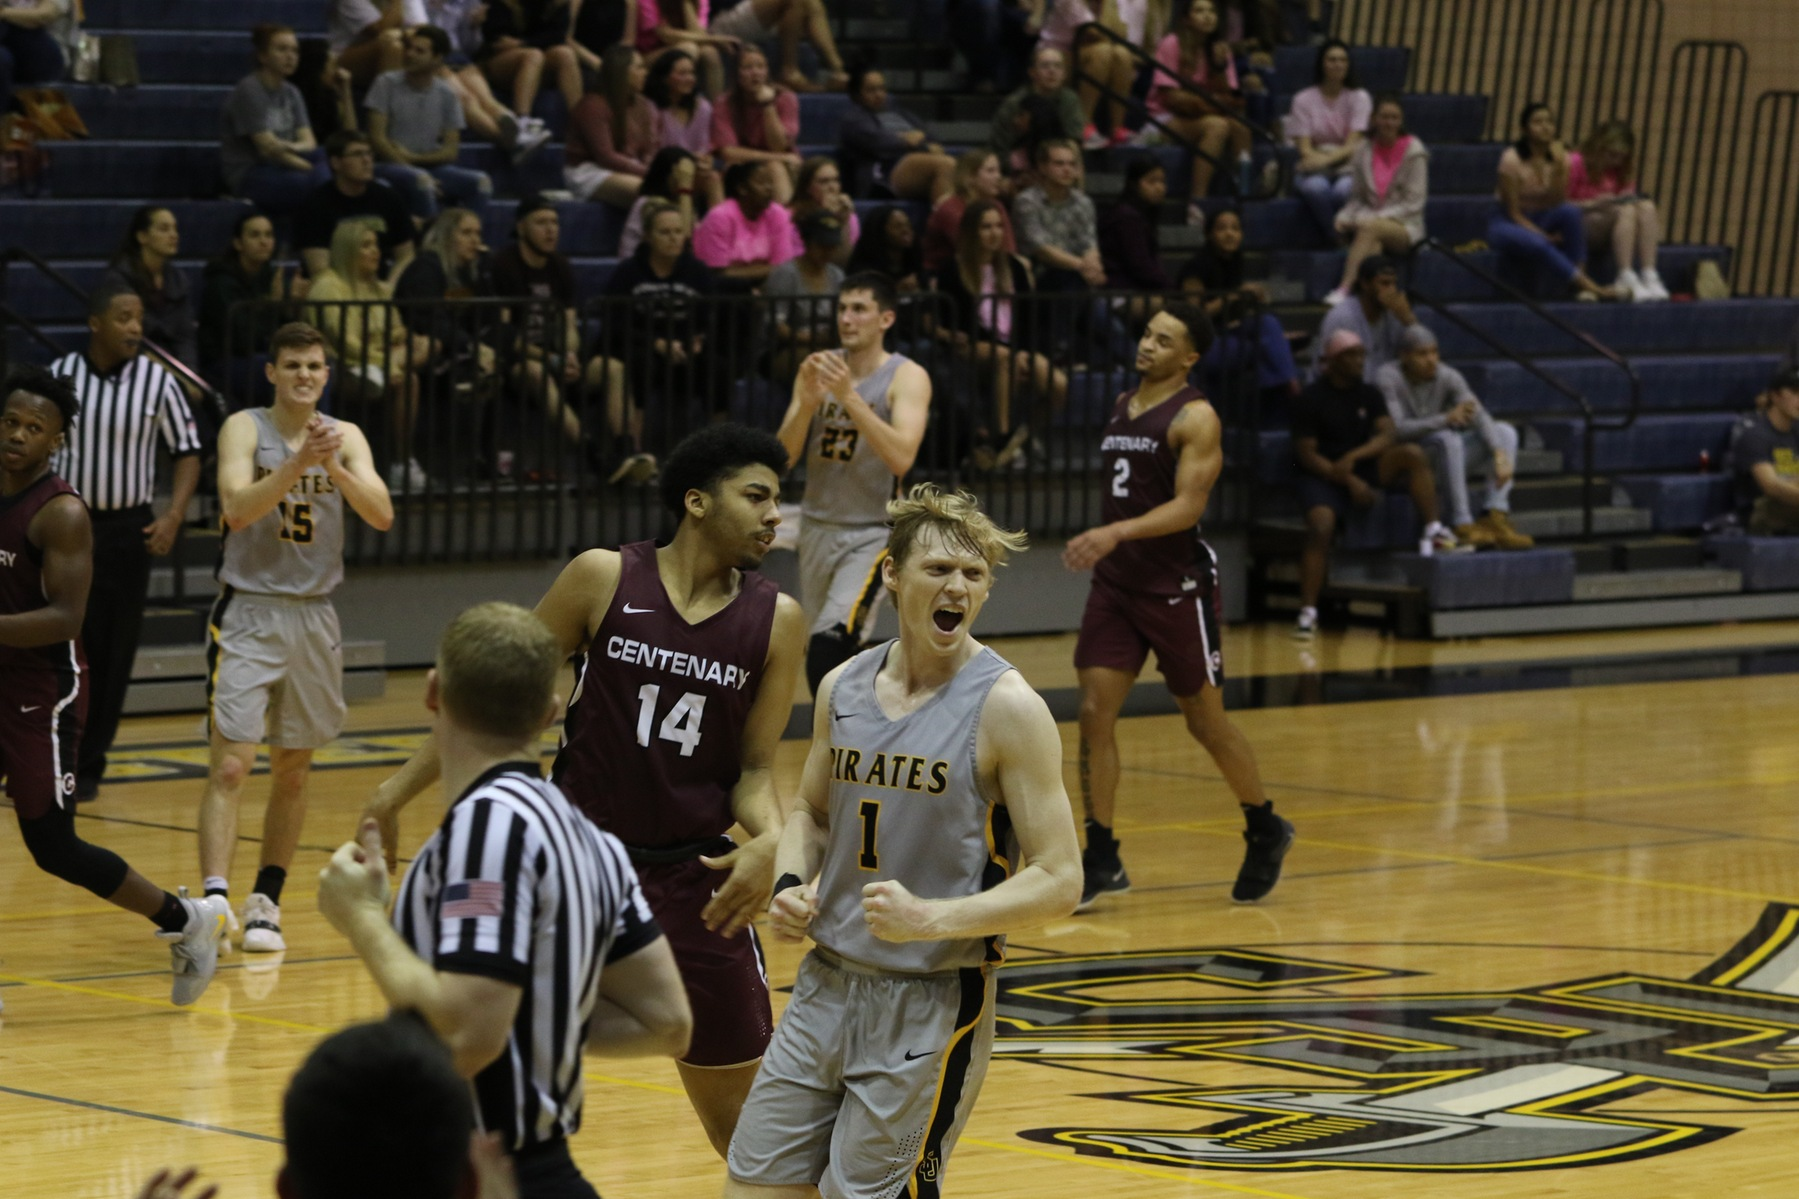 All Five Starters Reach Double Figures in Men's Basketball Victory Over Centenary